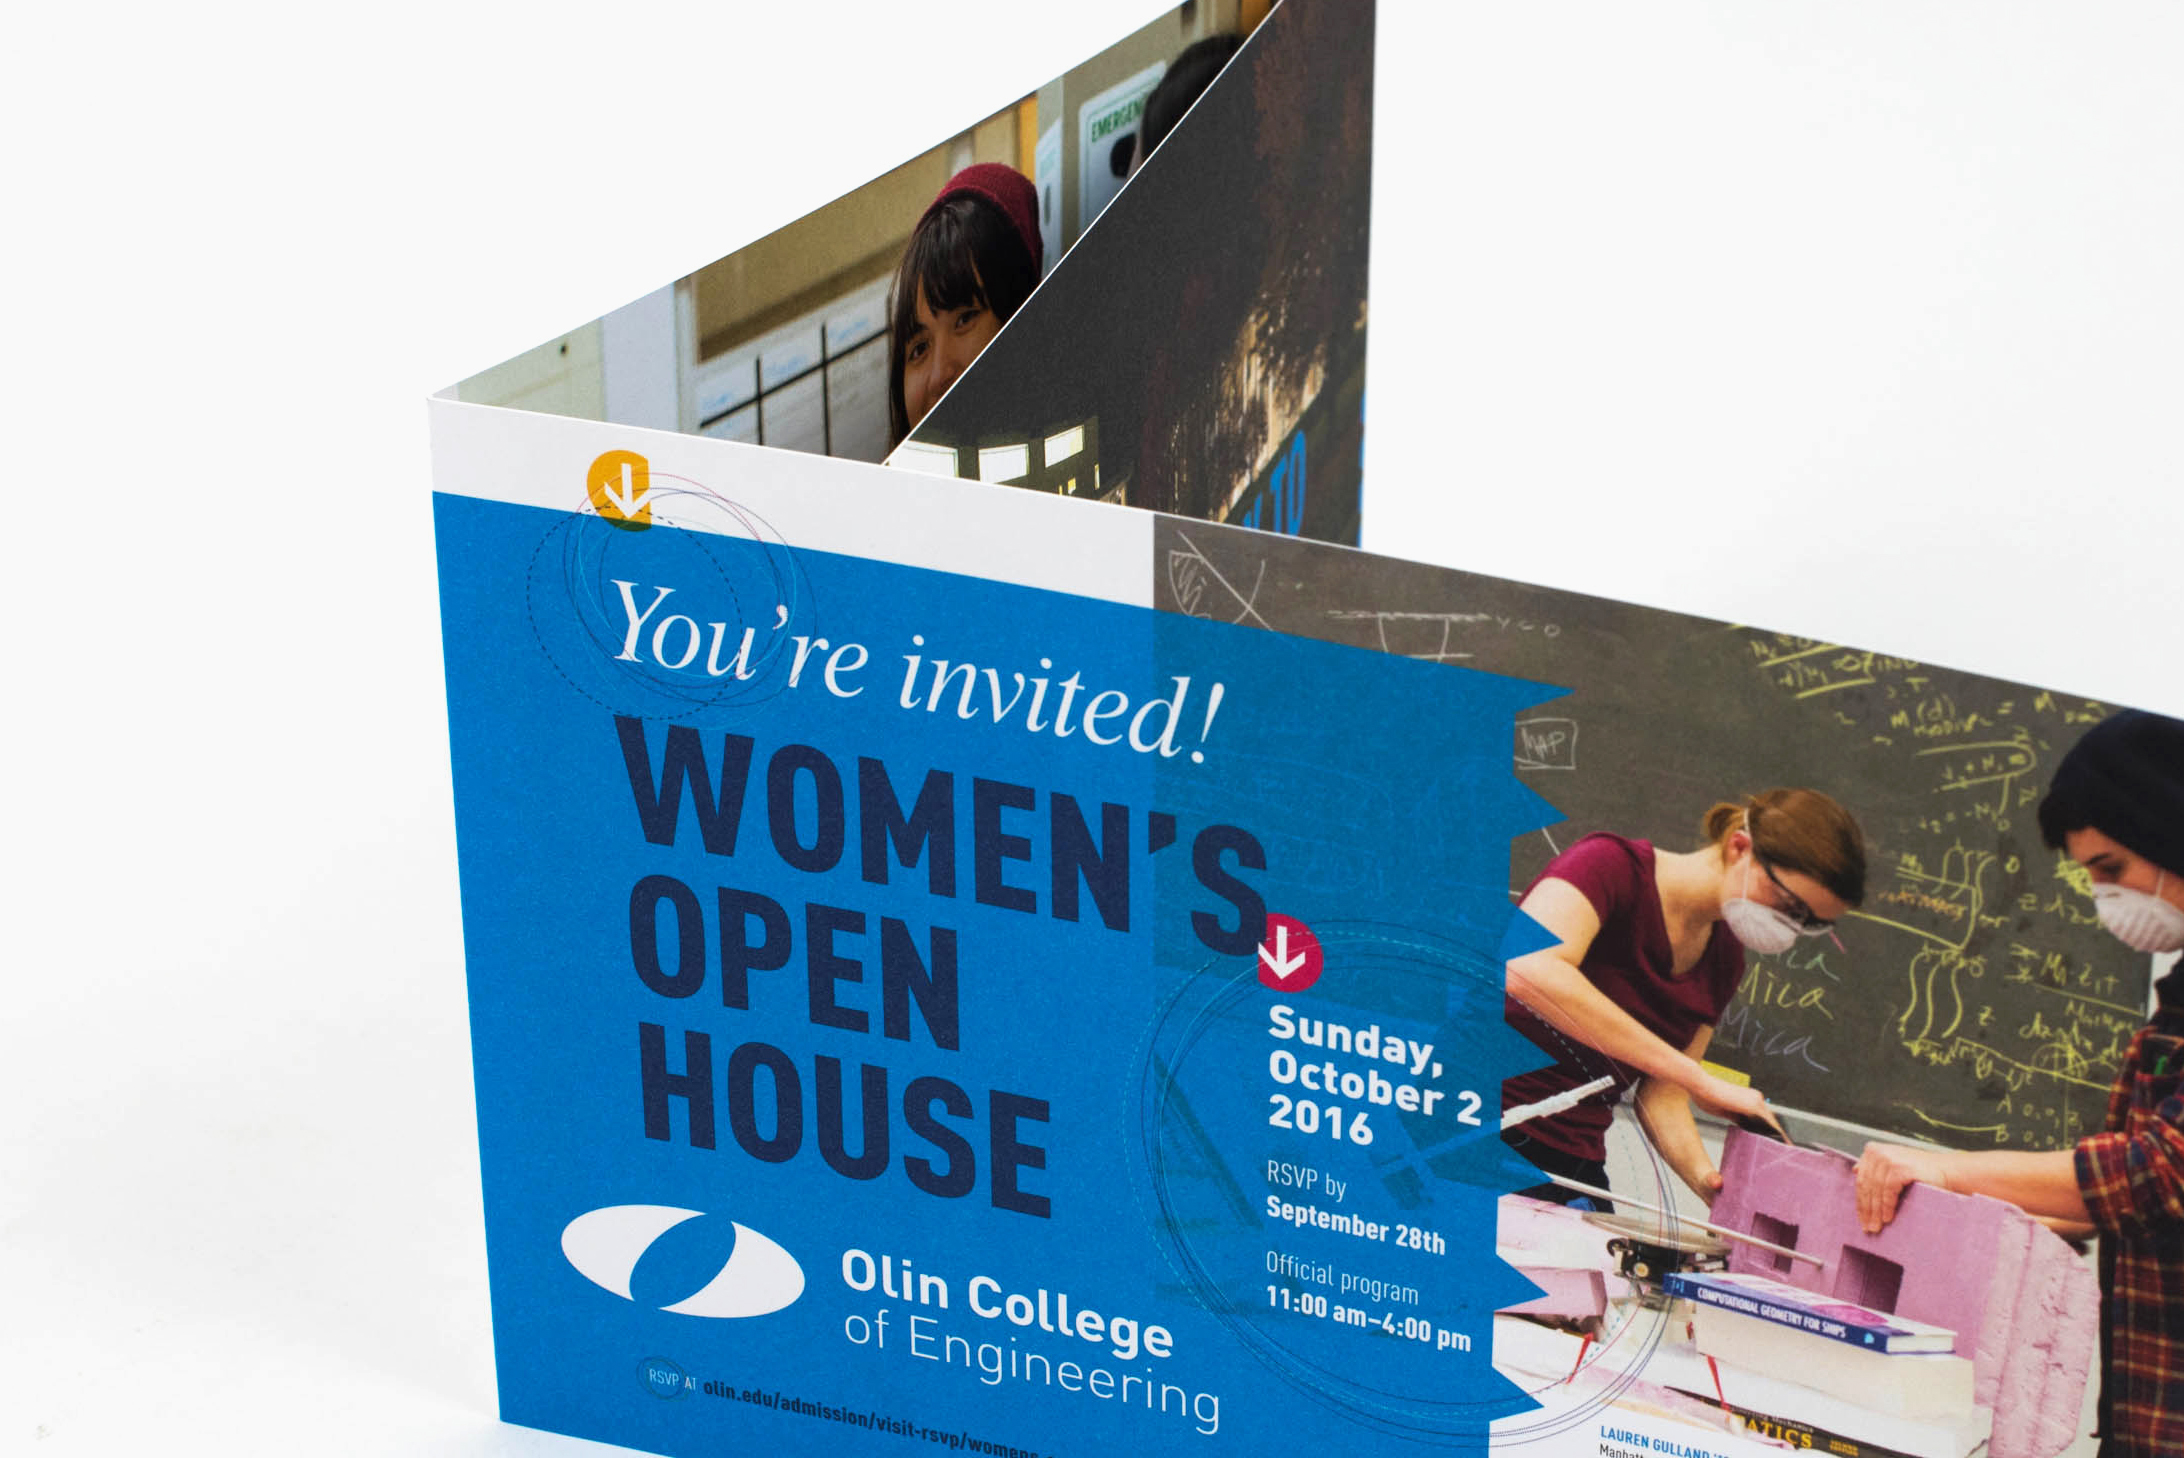 Olin College of Engineering Open House invites cover: You're invited! Women's Open House